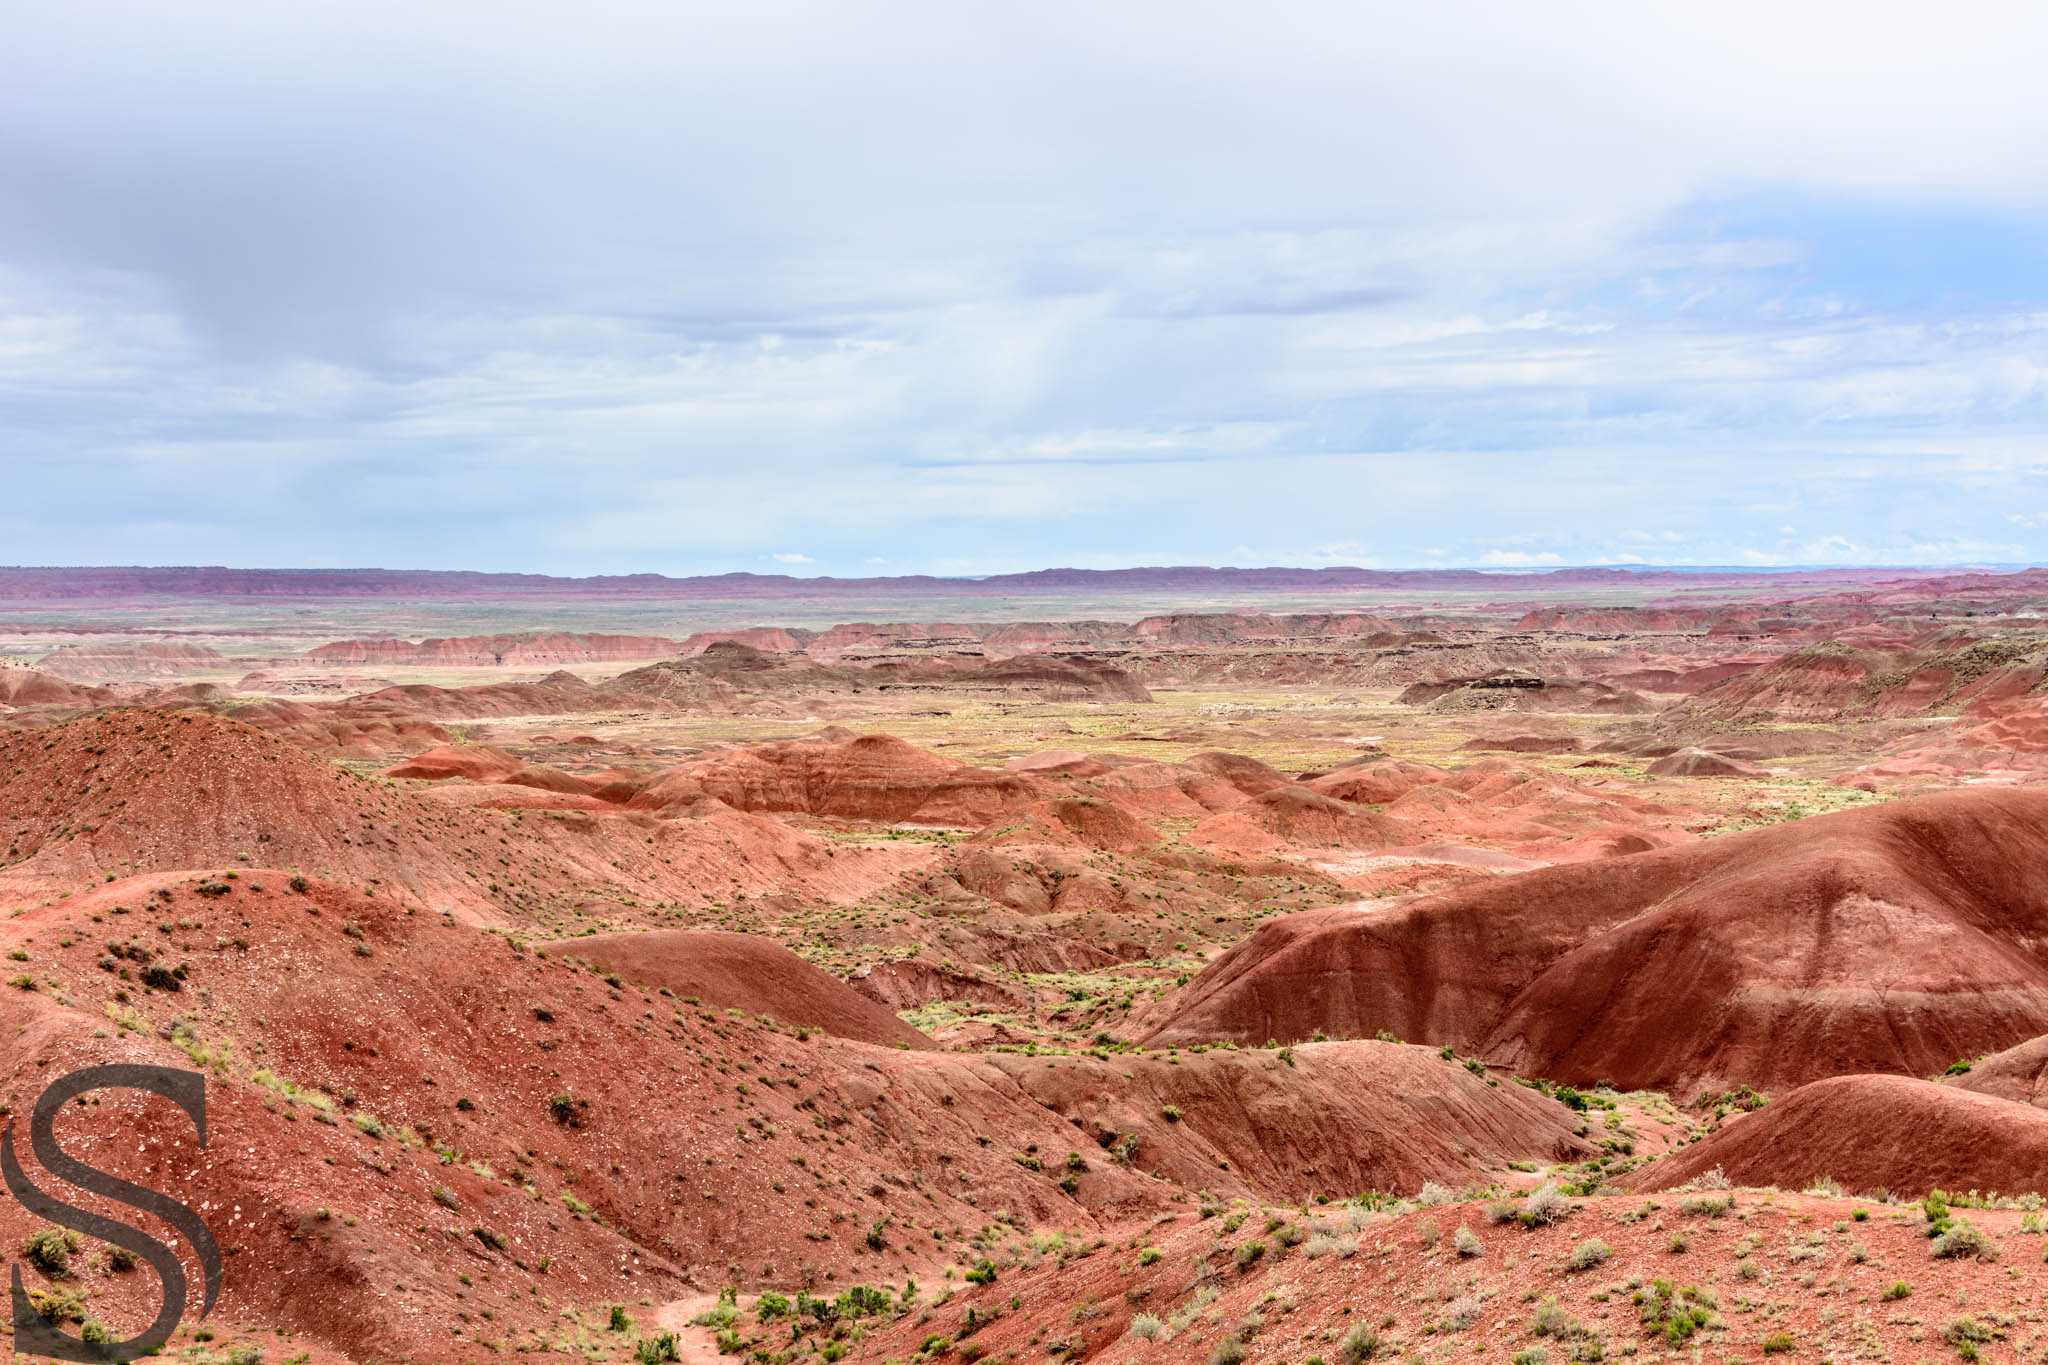 Standing within the painted desert just off the Tiponi Point Overlook in Petrified Forest National Park